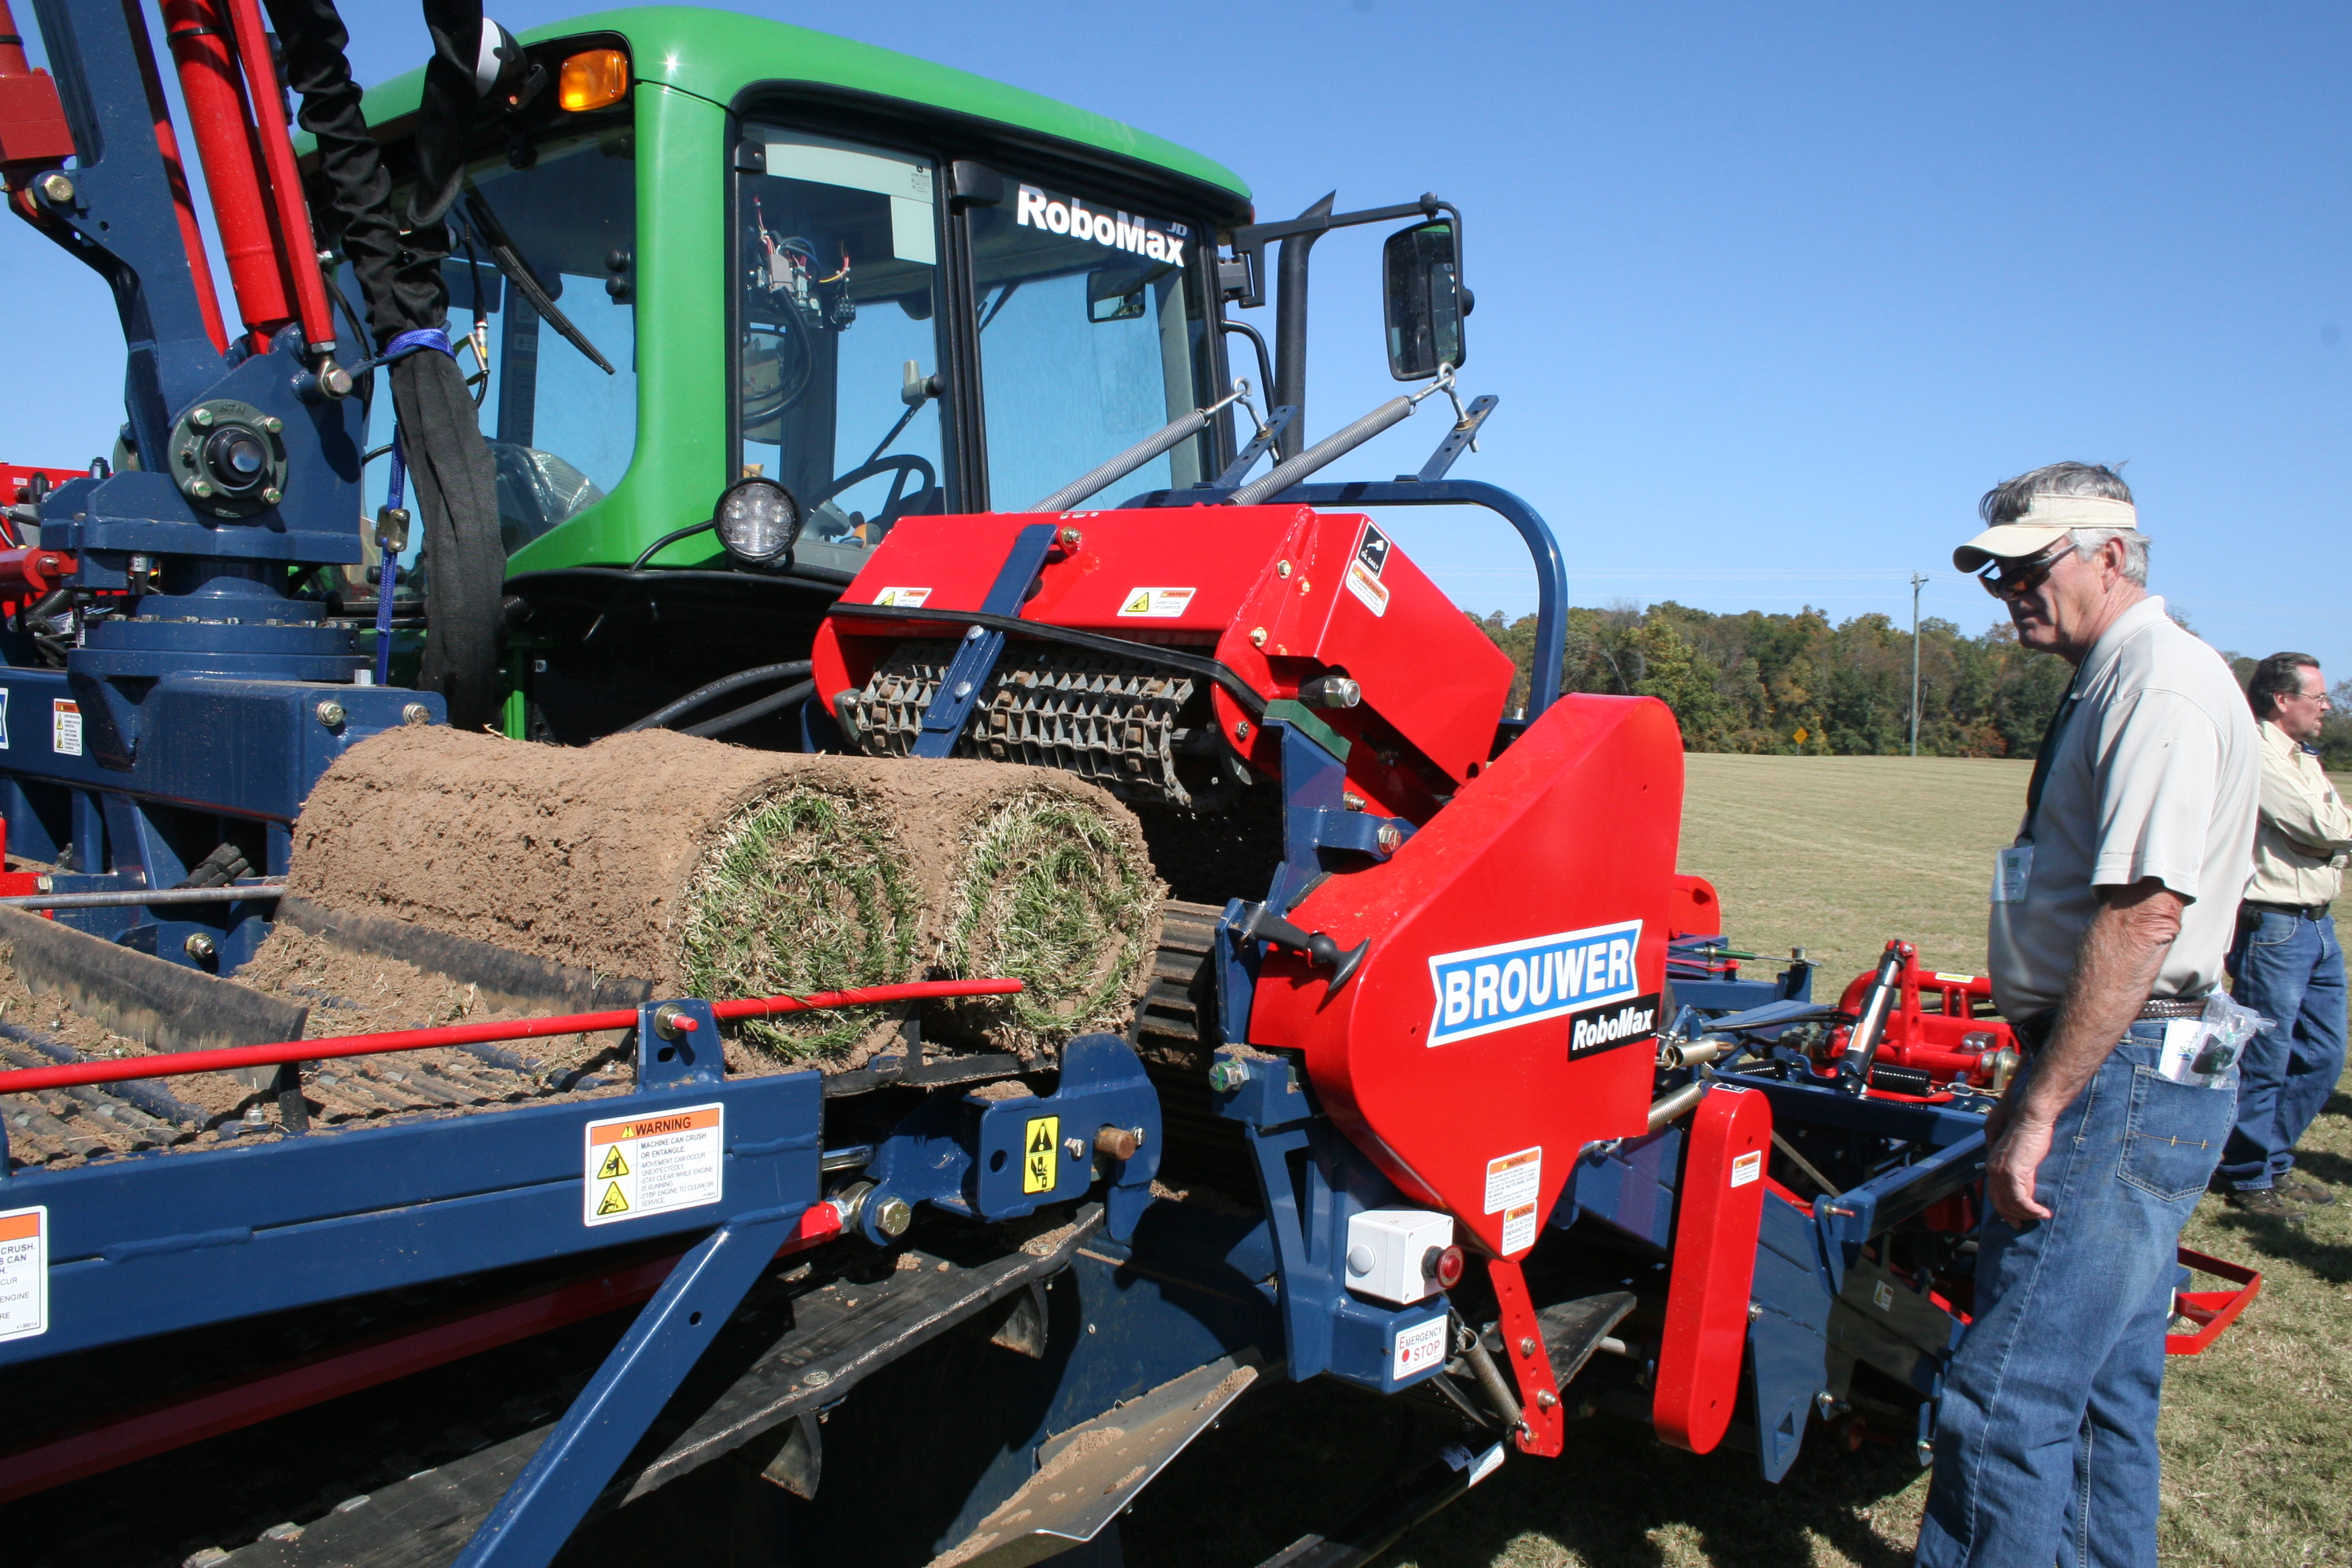 The up-coming EDGE Expo event includes a tradeshow highlighting the newest Green Industry equipment.